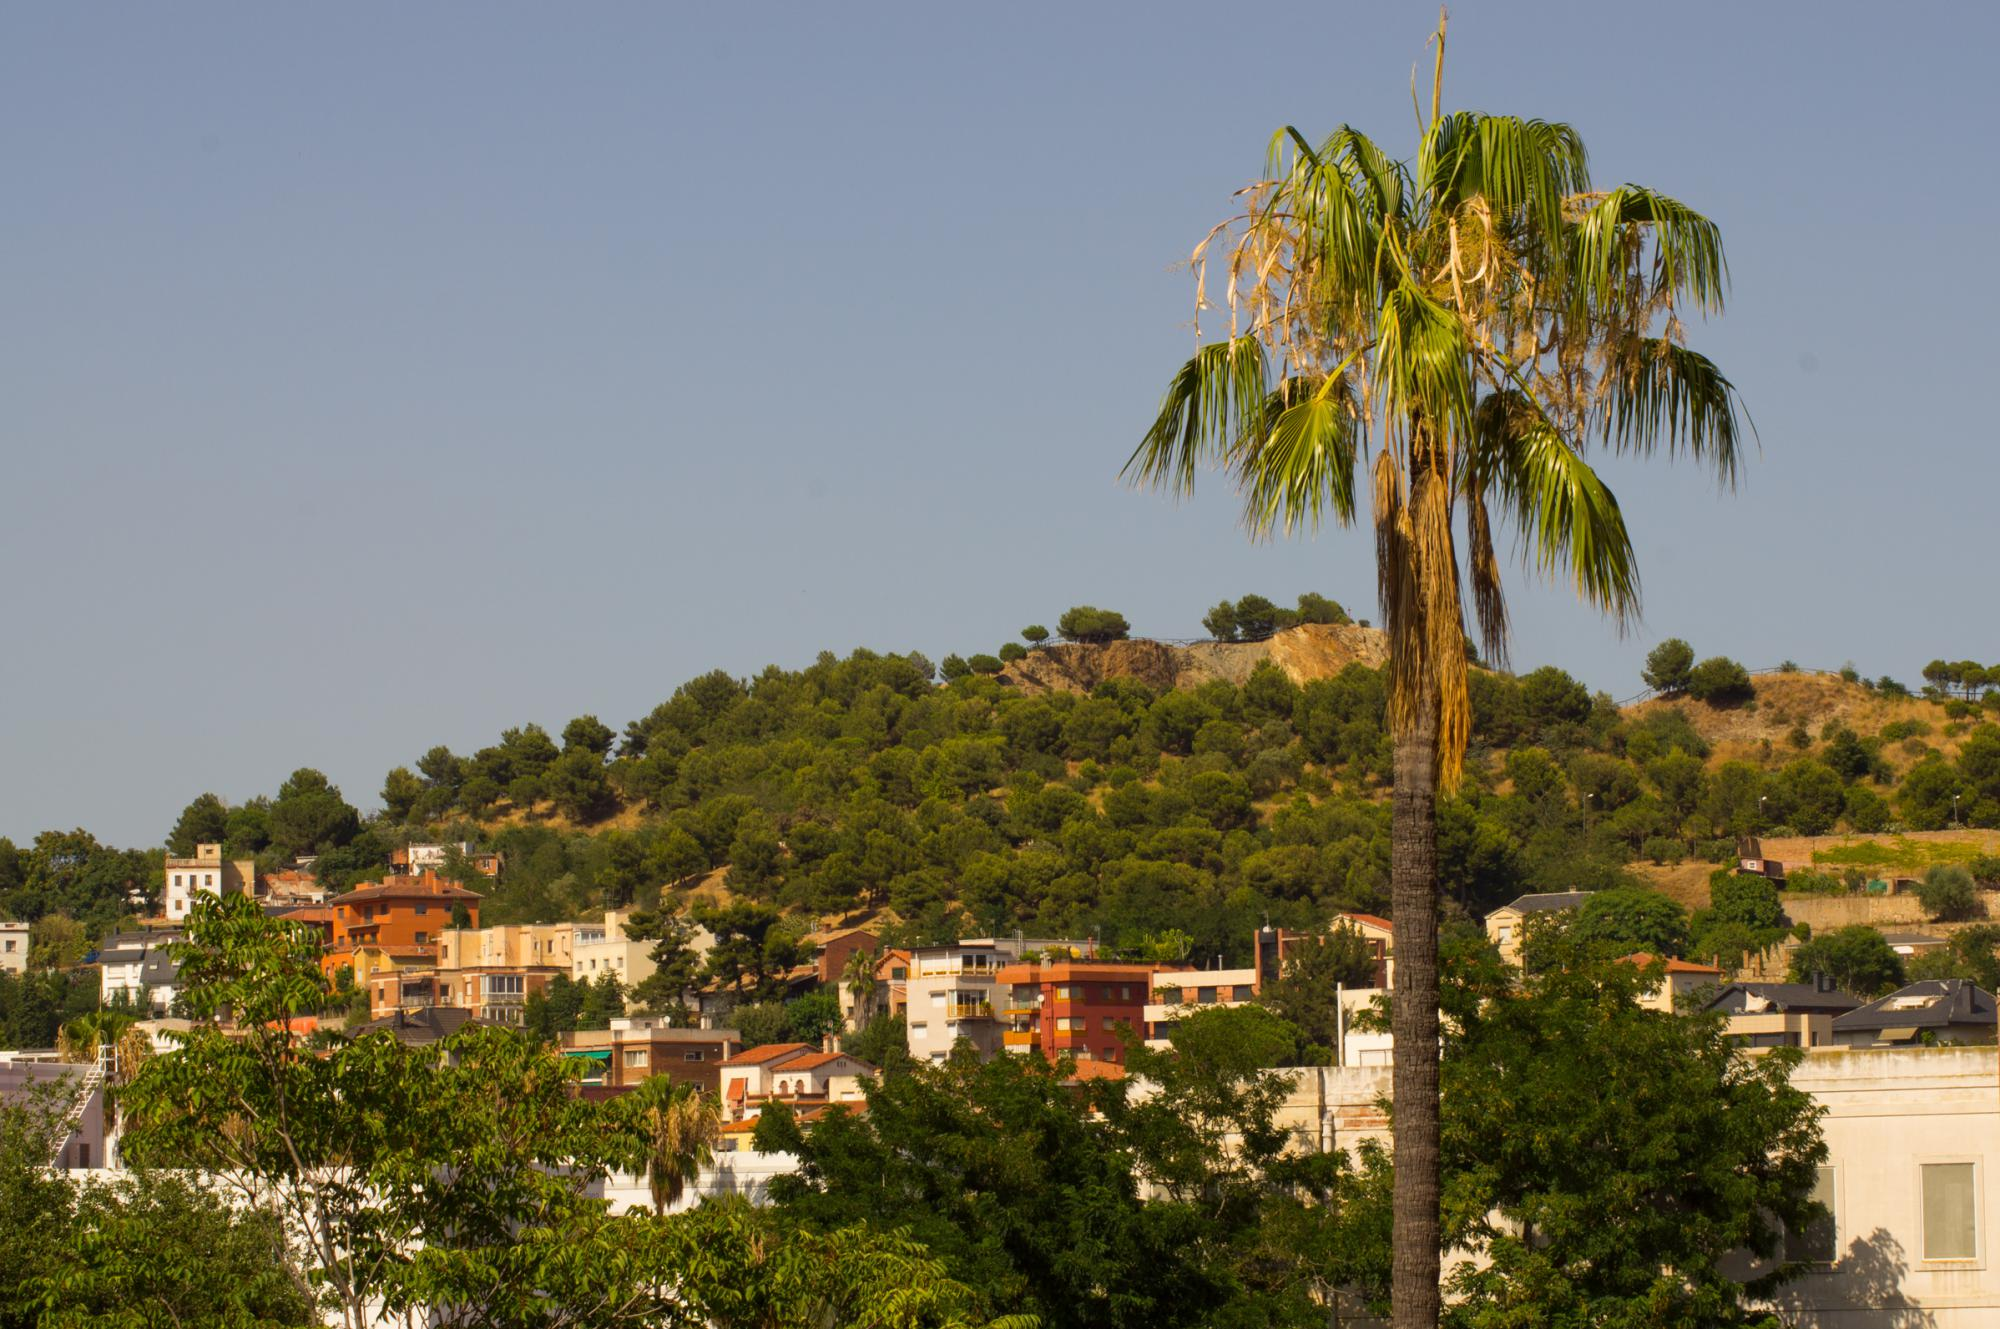 View of a palm tree and a hill in Barcelona